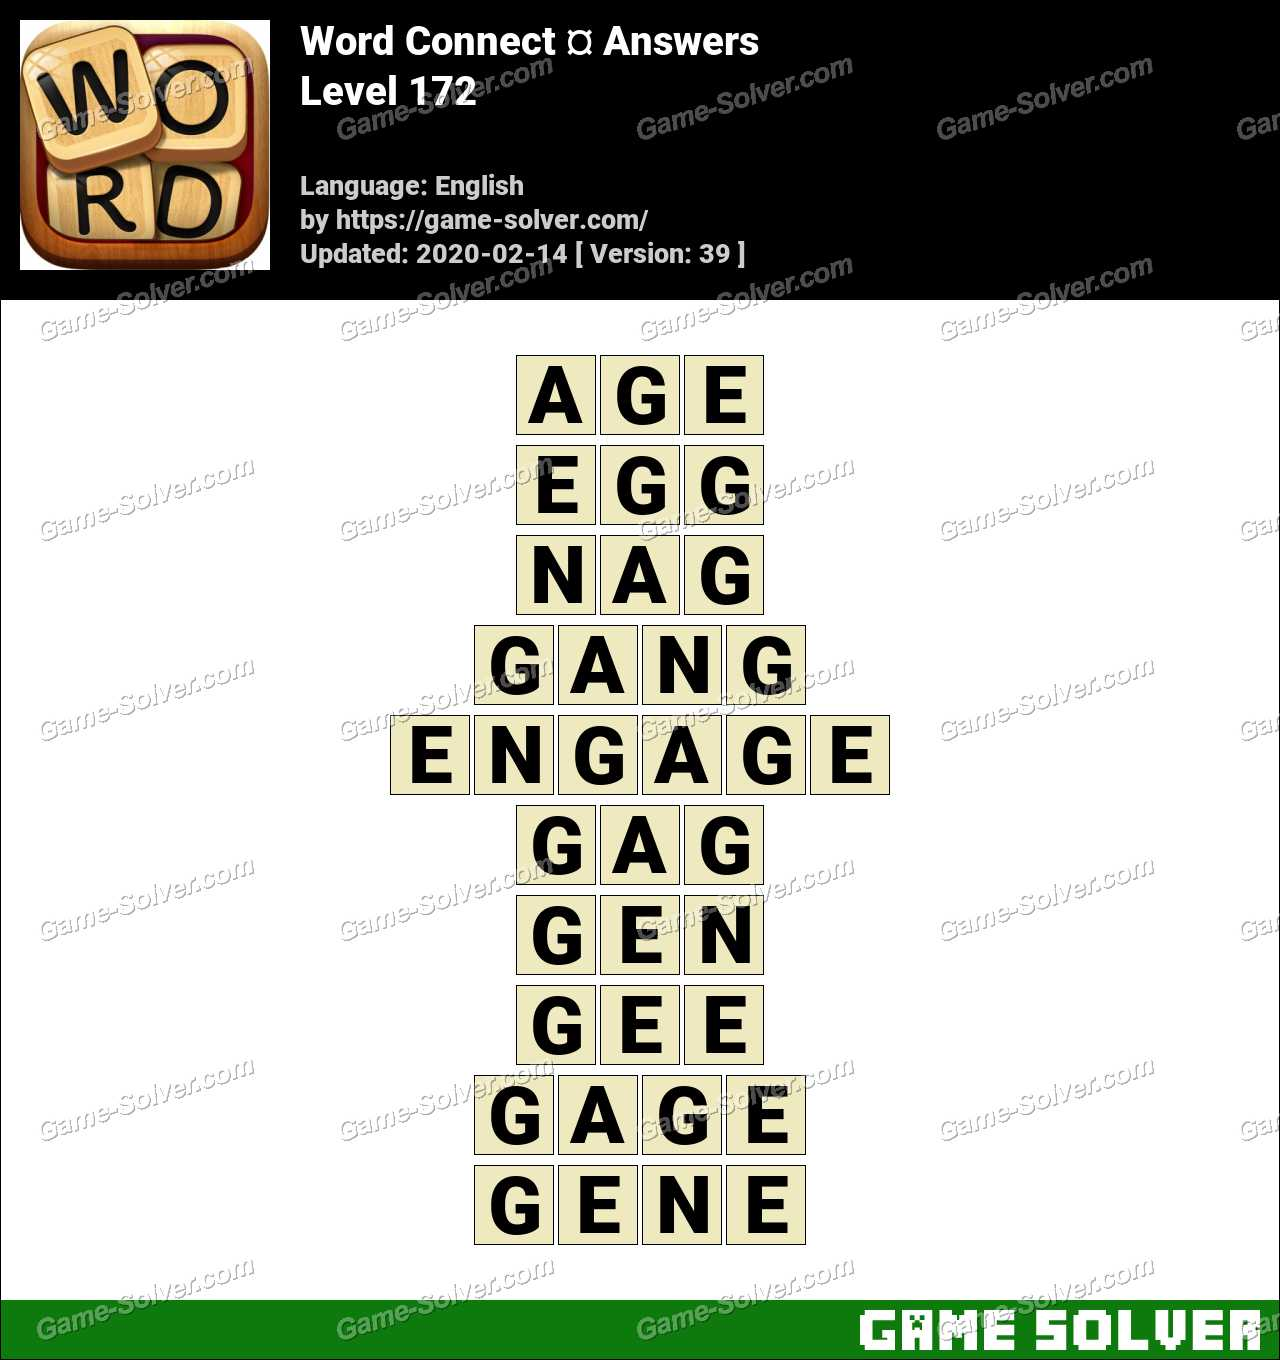 Word Connect Level 172 Answers